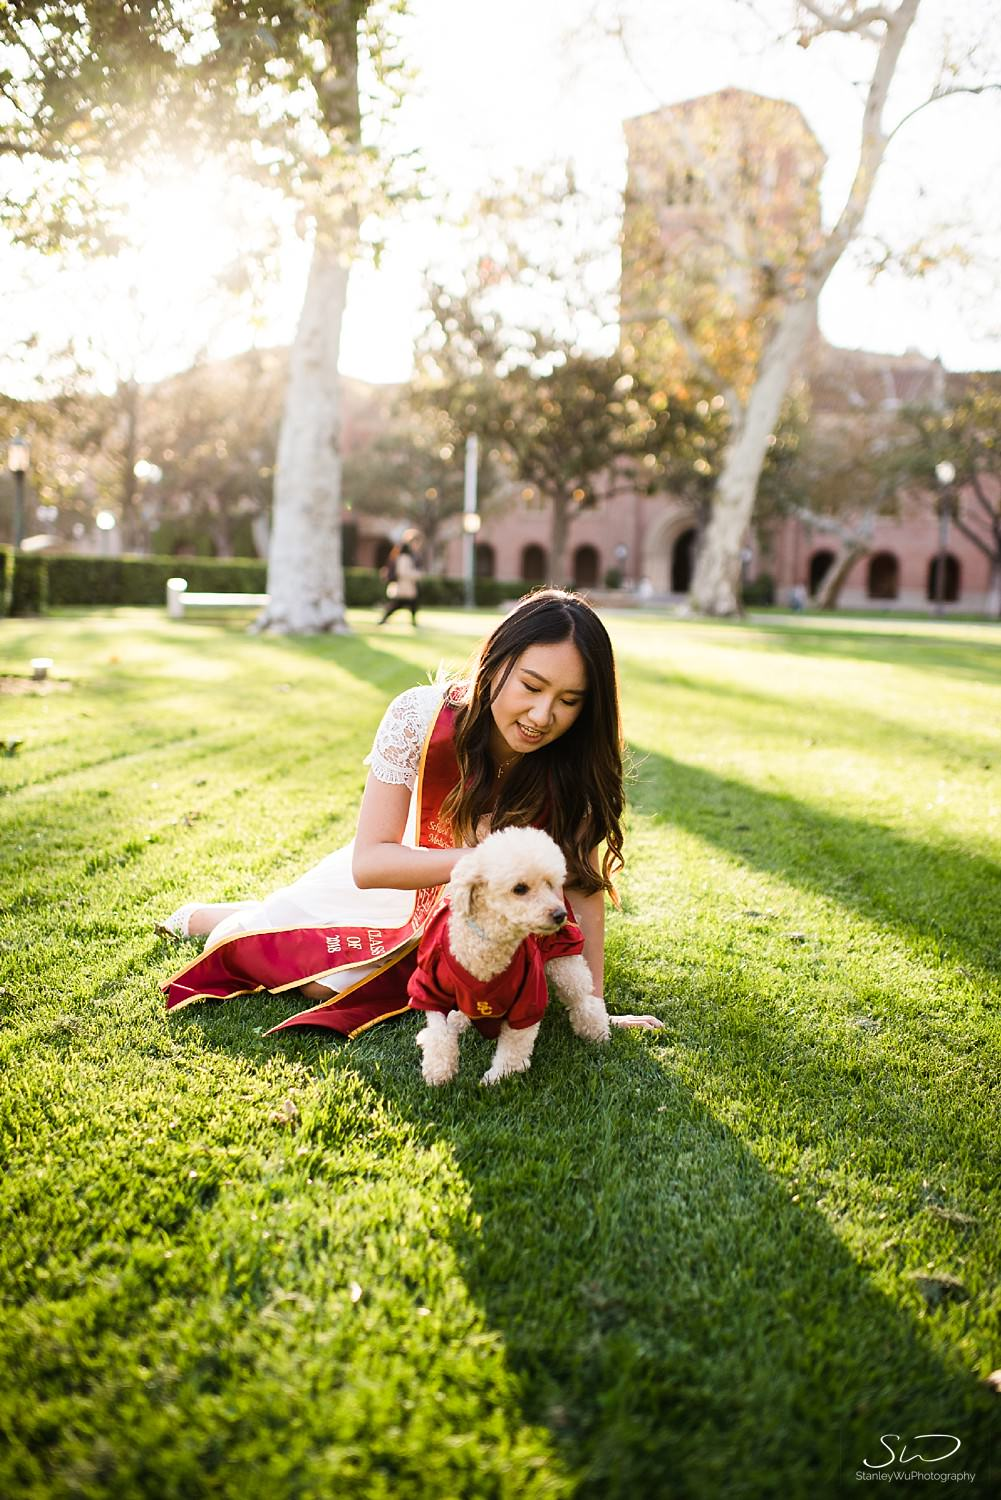 Playing with poodles at USC | Los Angeles Orange County Senior Portrait & Wedding Photographer